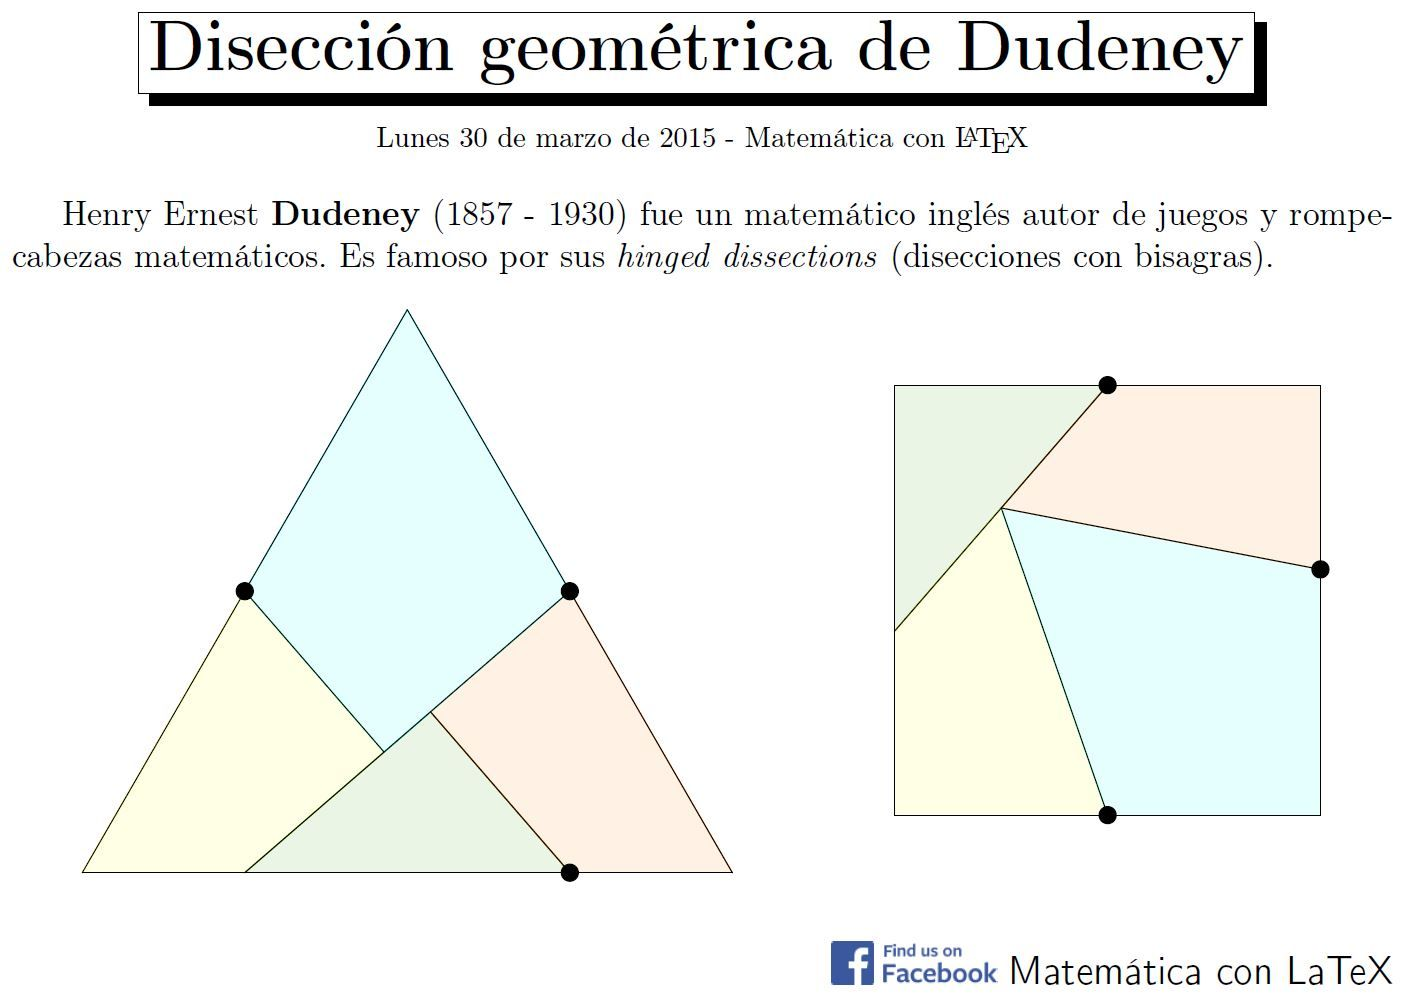 Dudeney S Hinged Dissections Facebook Matematicaconlatex